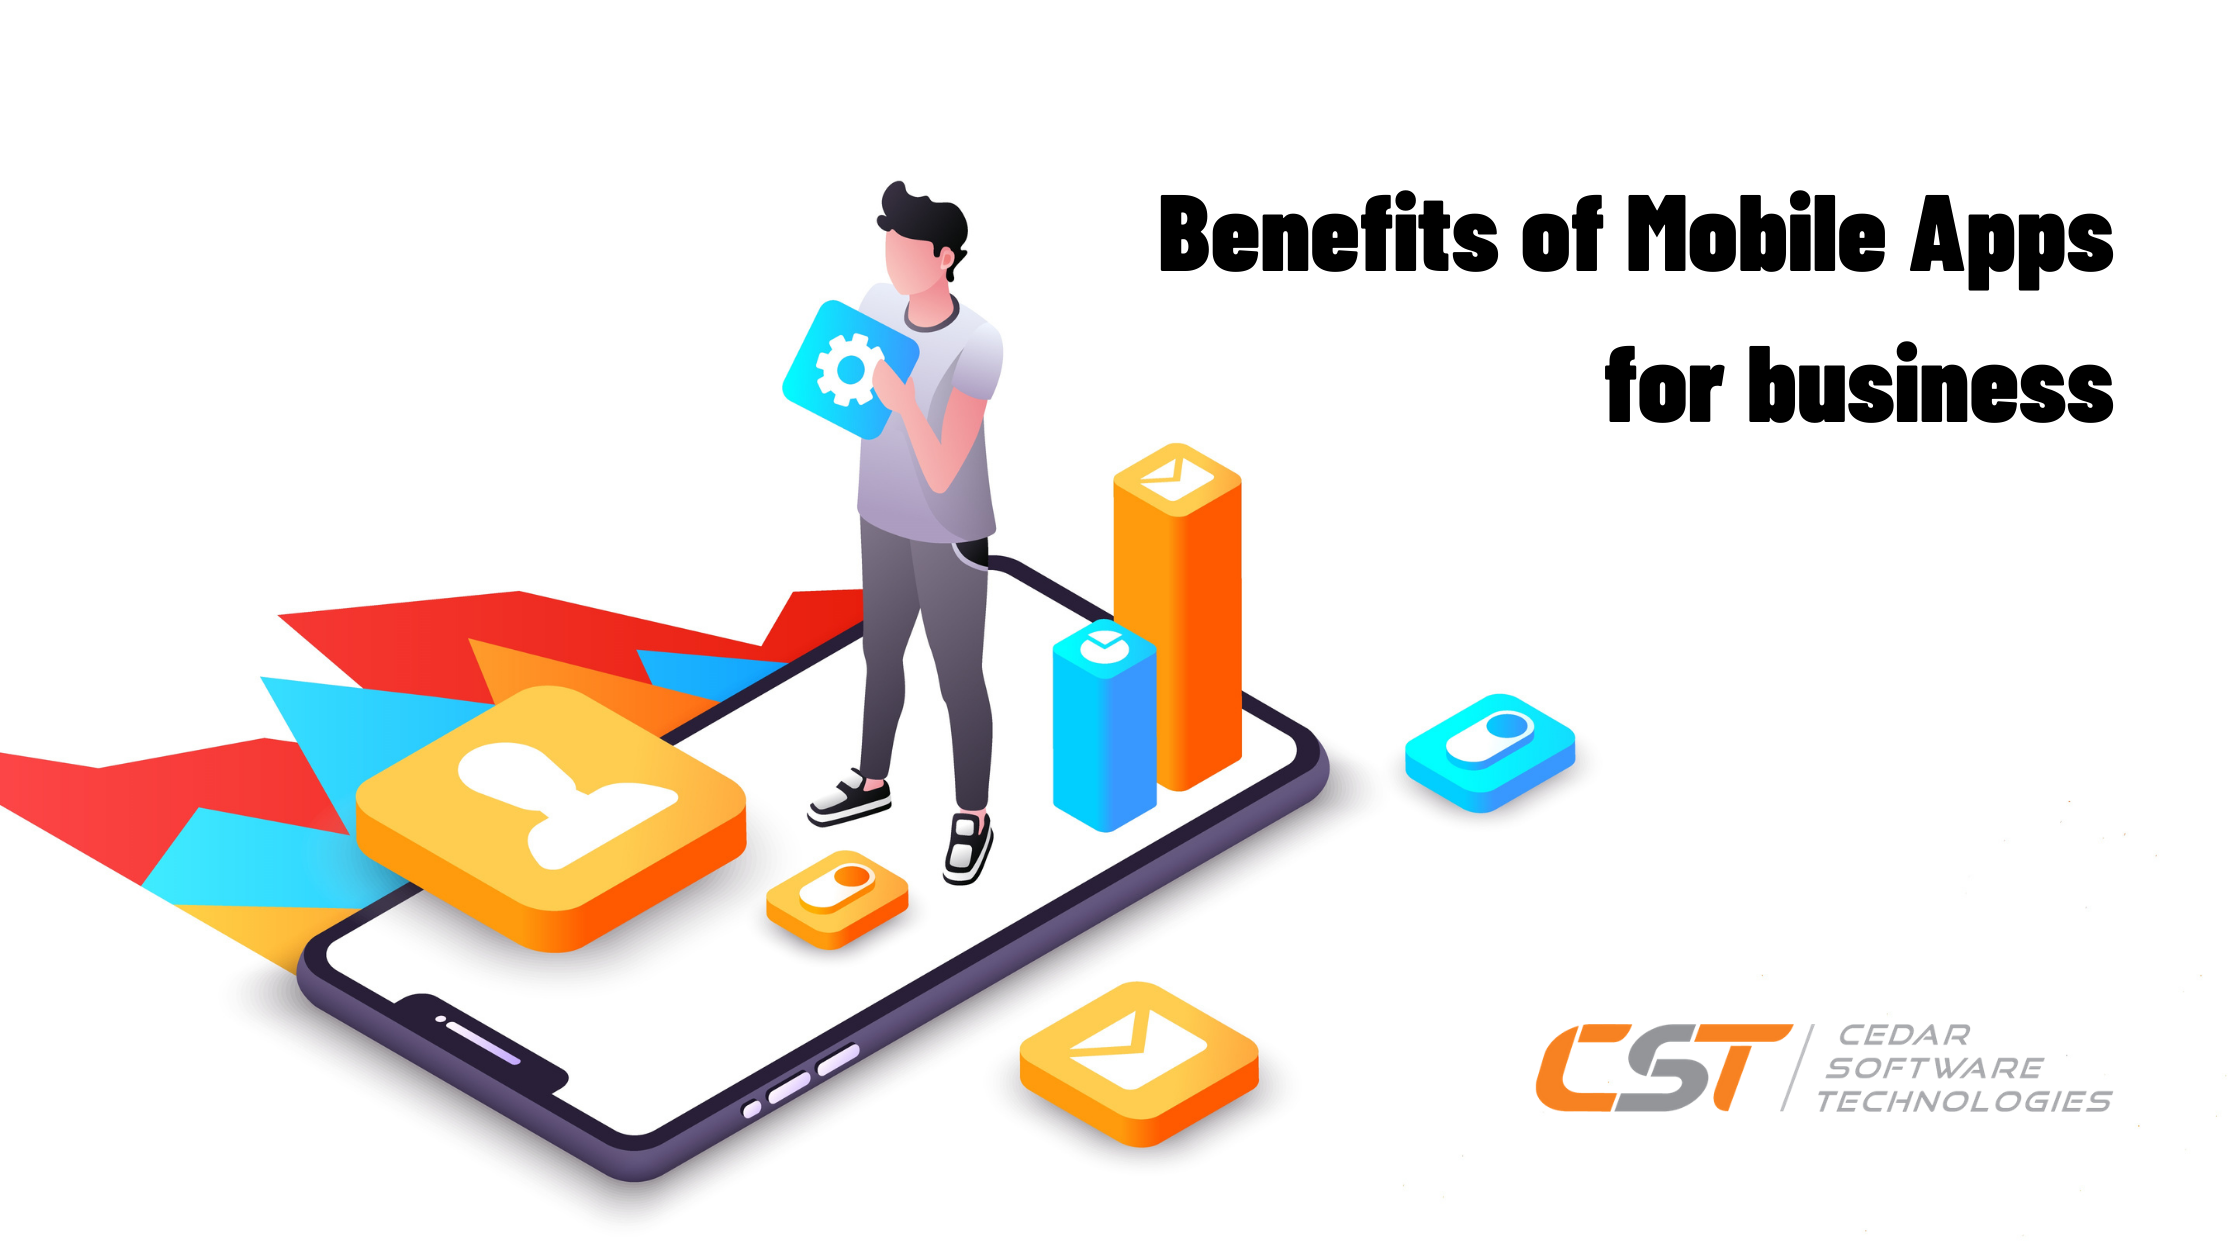 Benefits of Mobile Apps for business